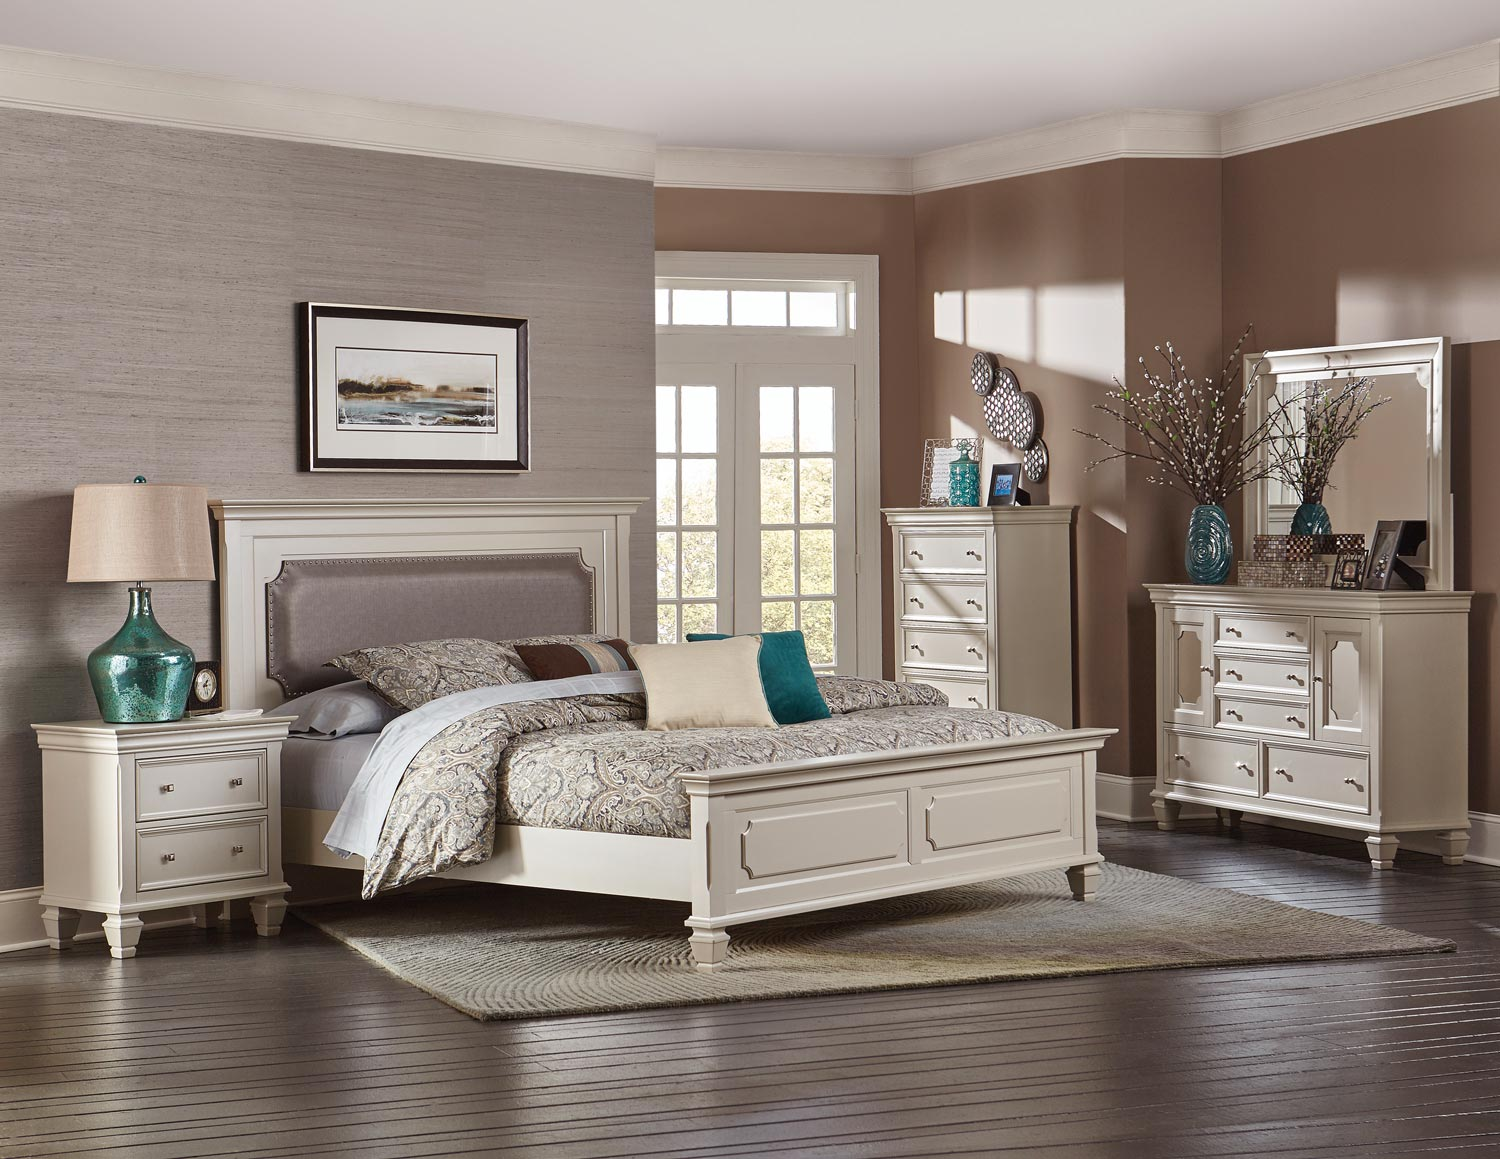 Homelegance Odette Upholstered Panel Bedroom Set - Champagne B1937-1 ...